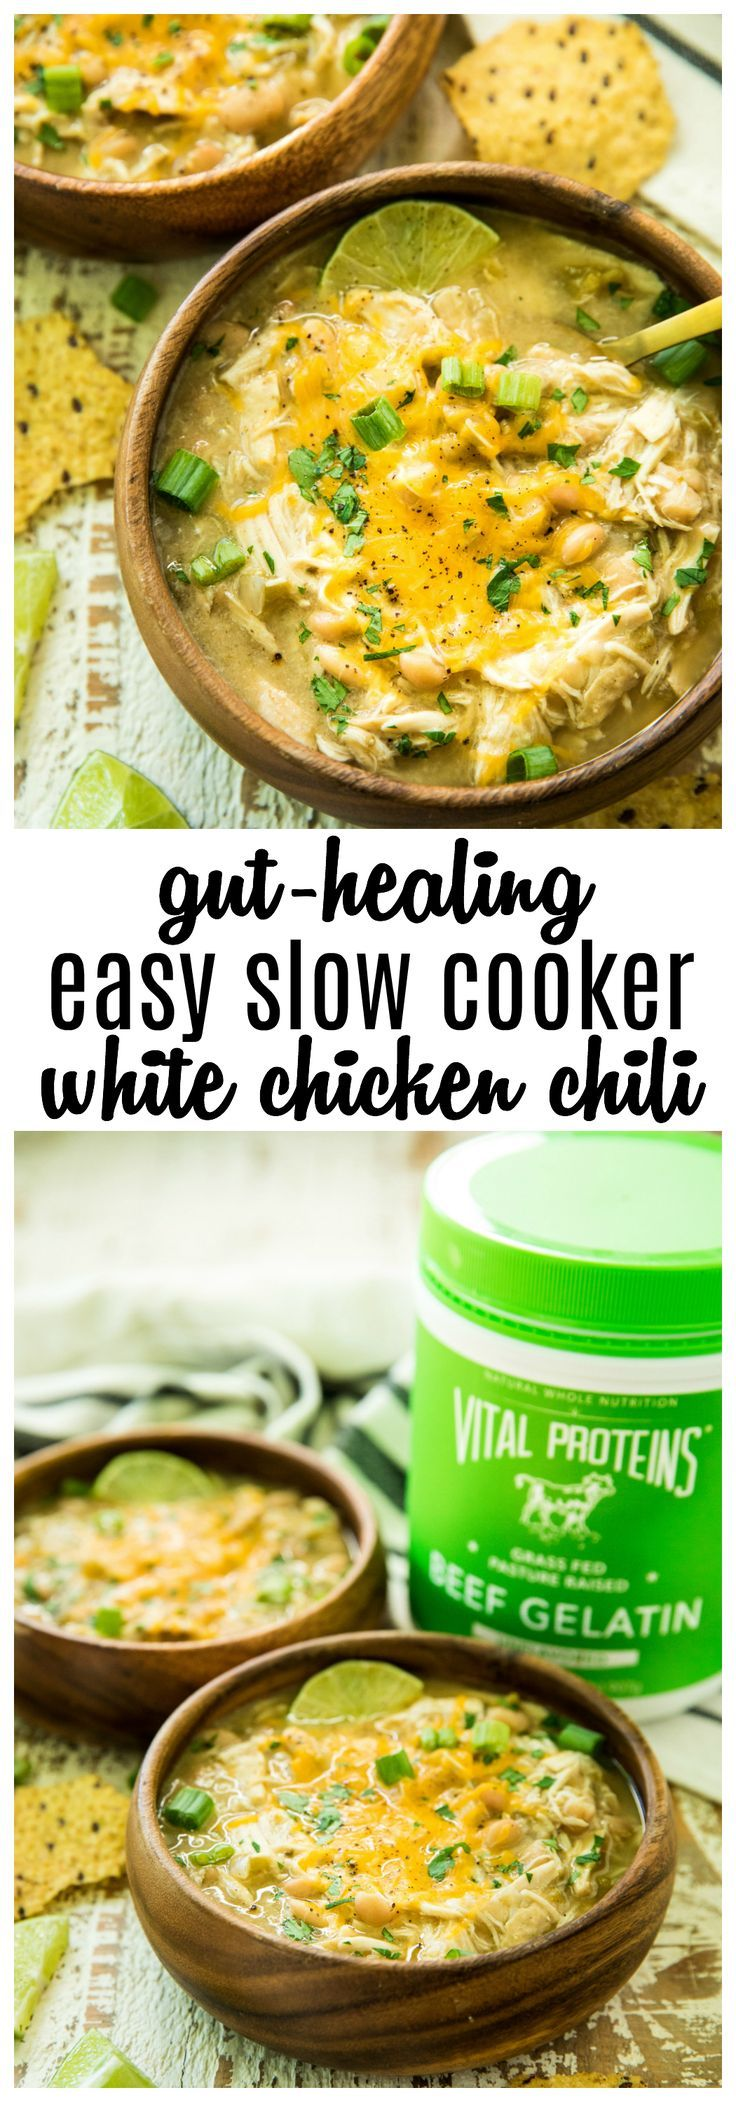 Gut-Healing Easy Slow Cooker White Chicken Chili - Kim's Cravings